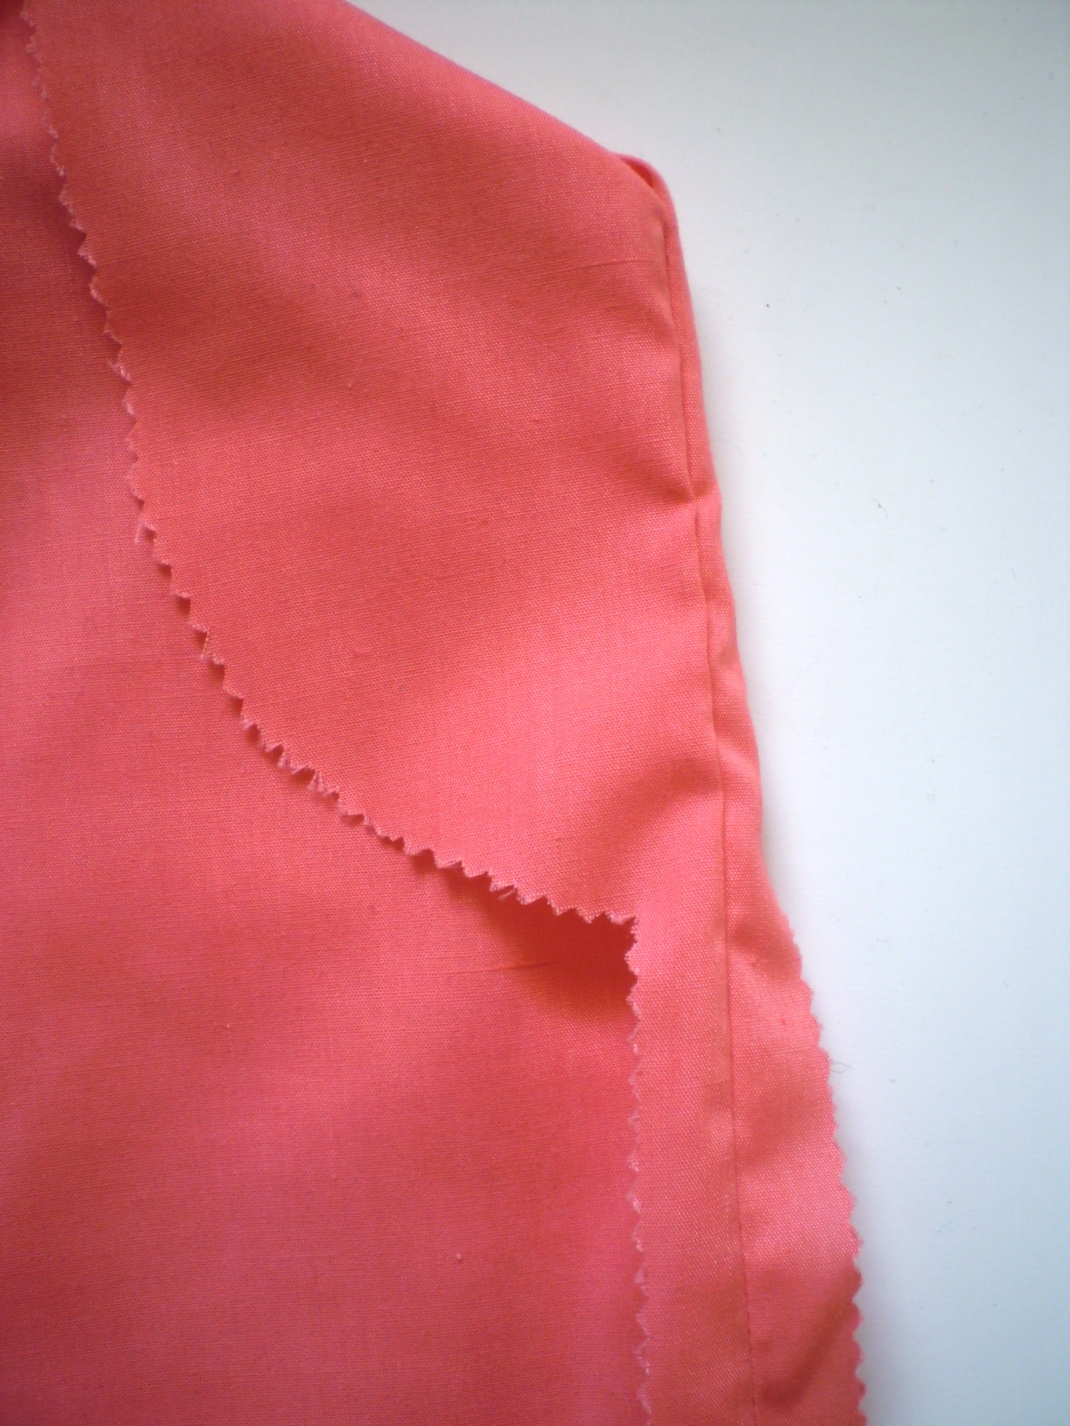 If you don't have a serger, finish seams with pinking shears instead. It's much cheaper!